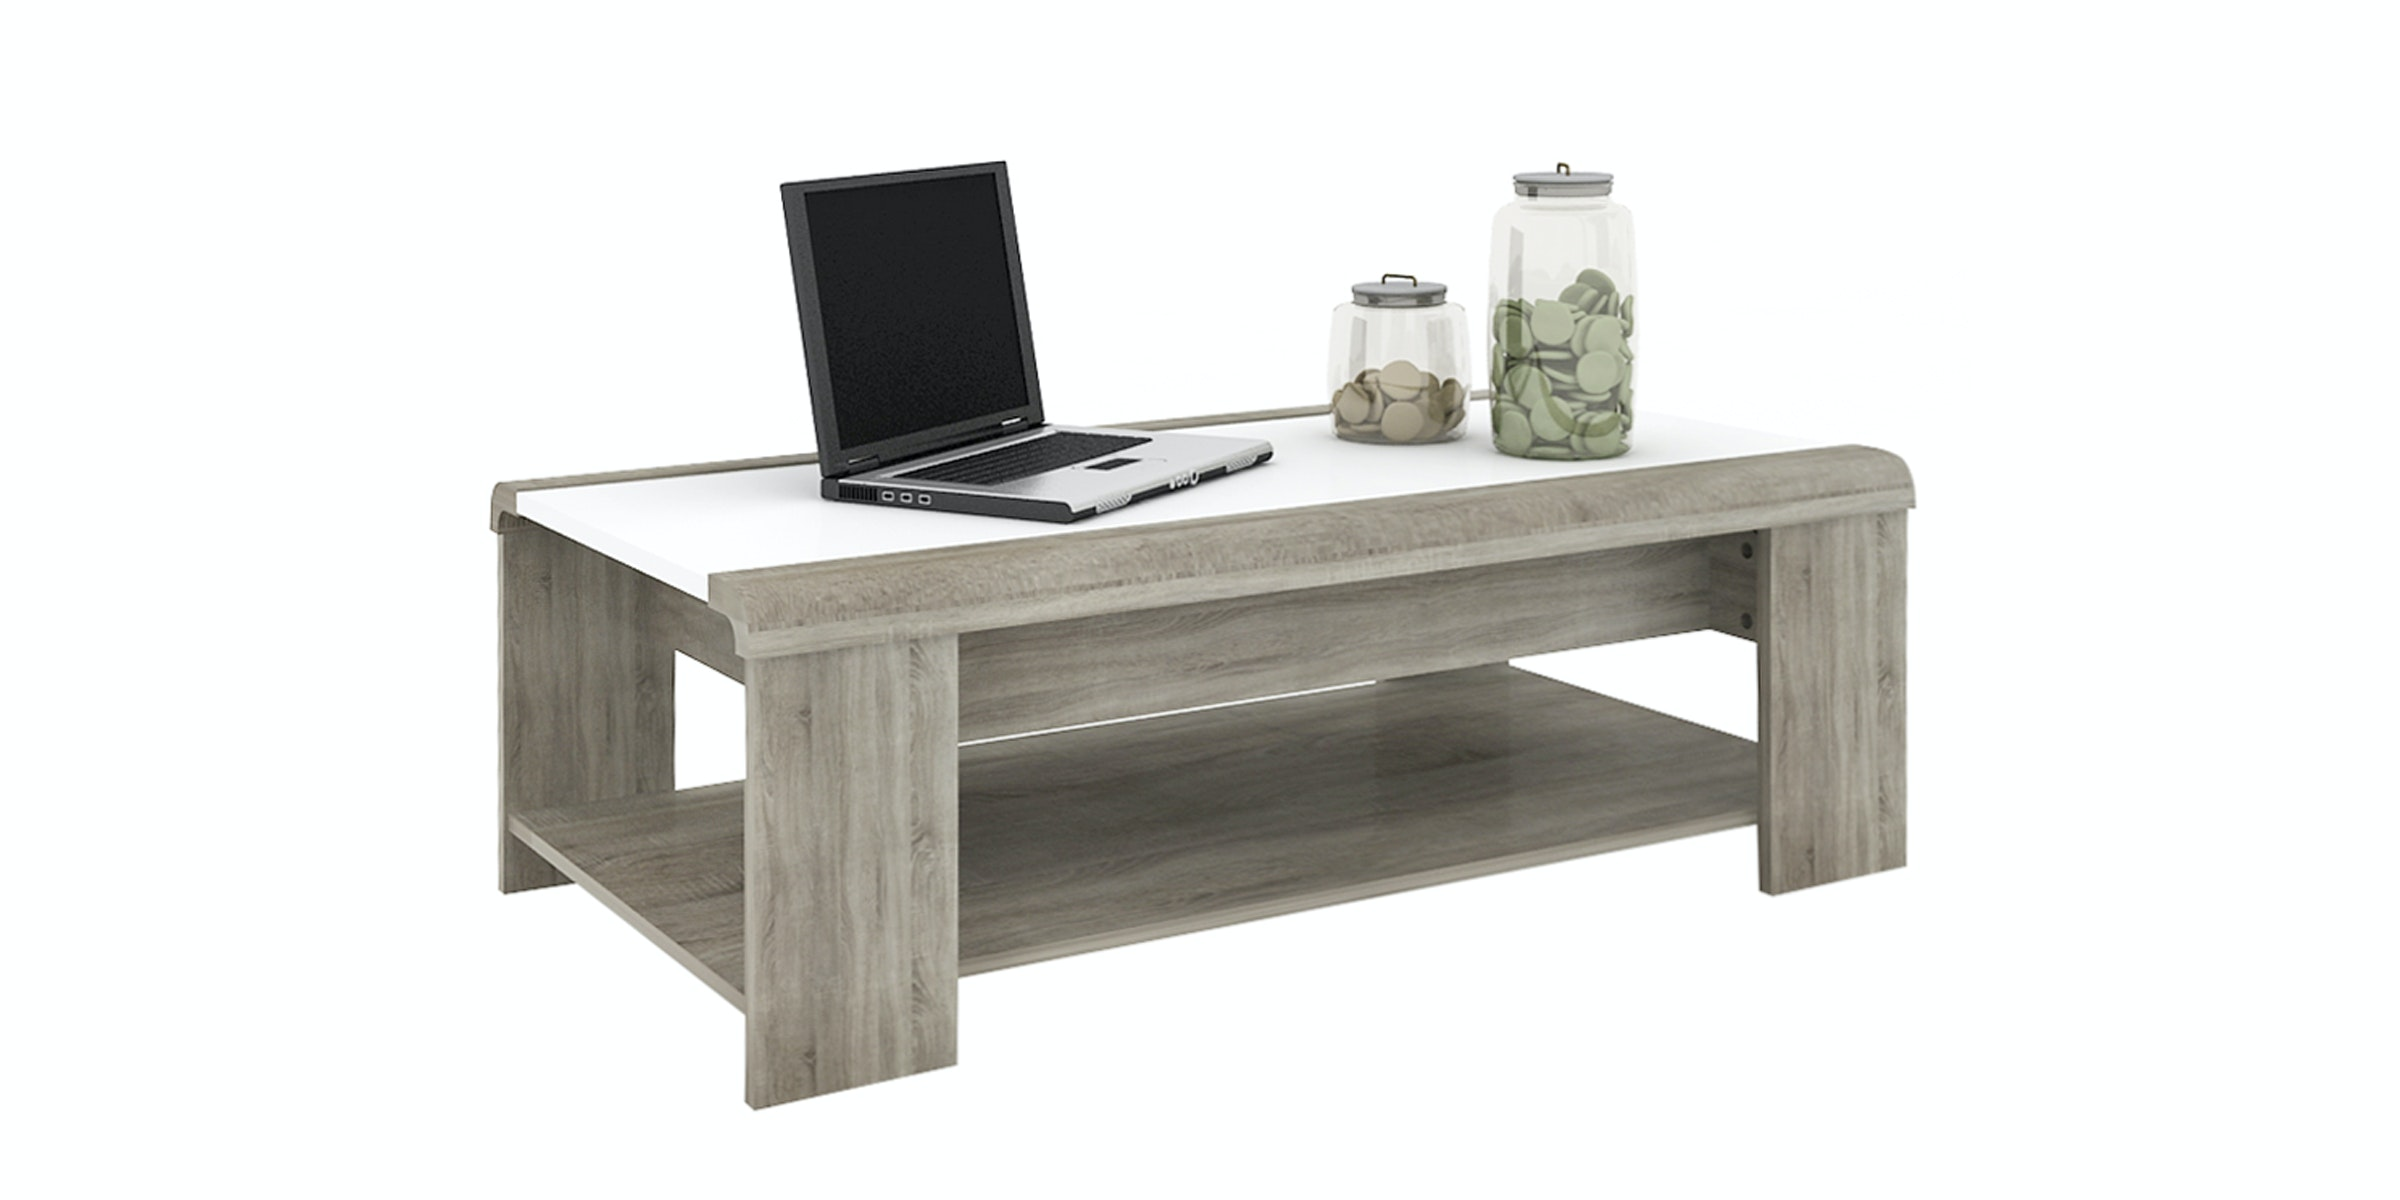 Anya Living Coffee Table Lift Table Oak White